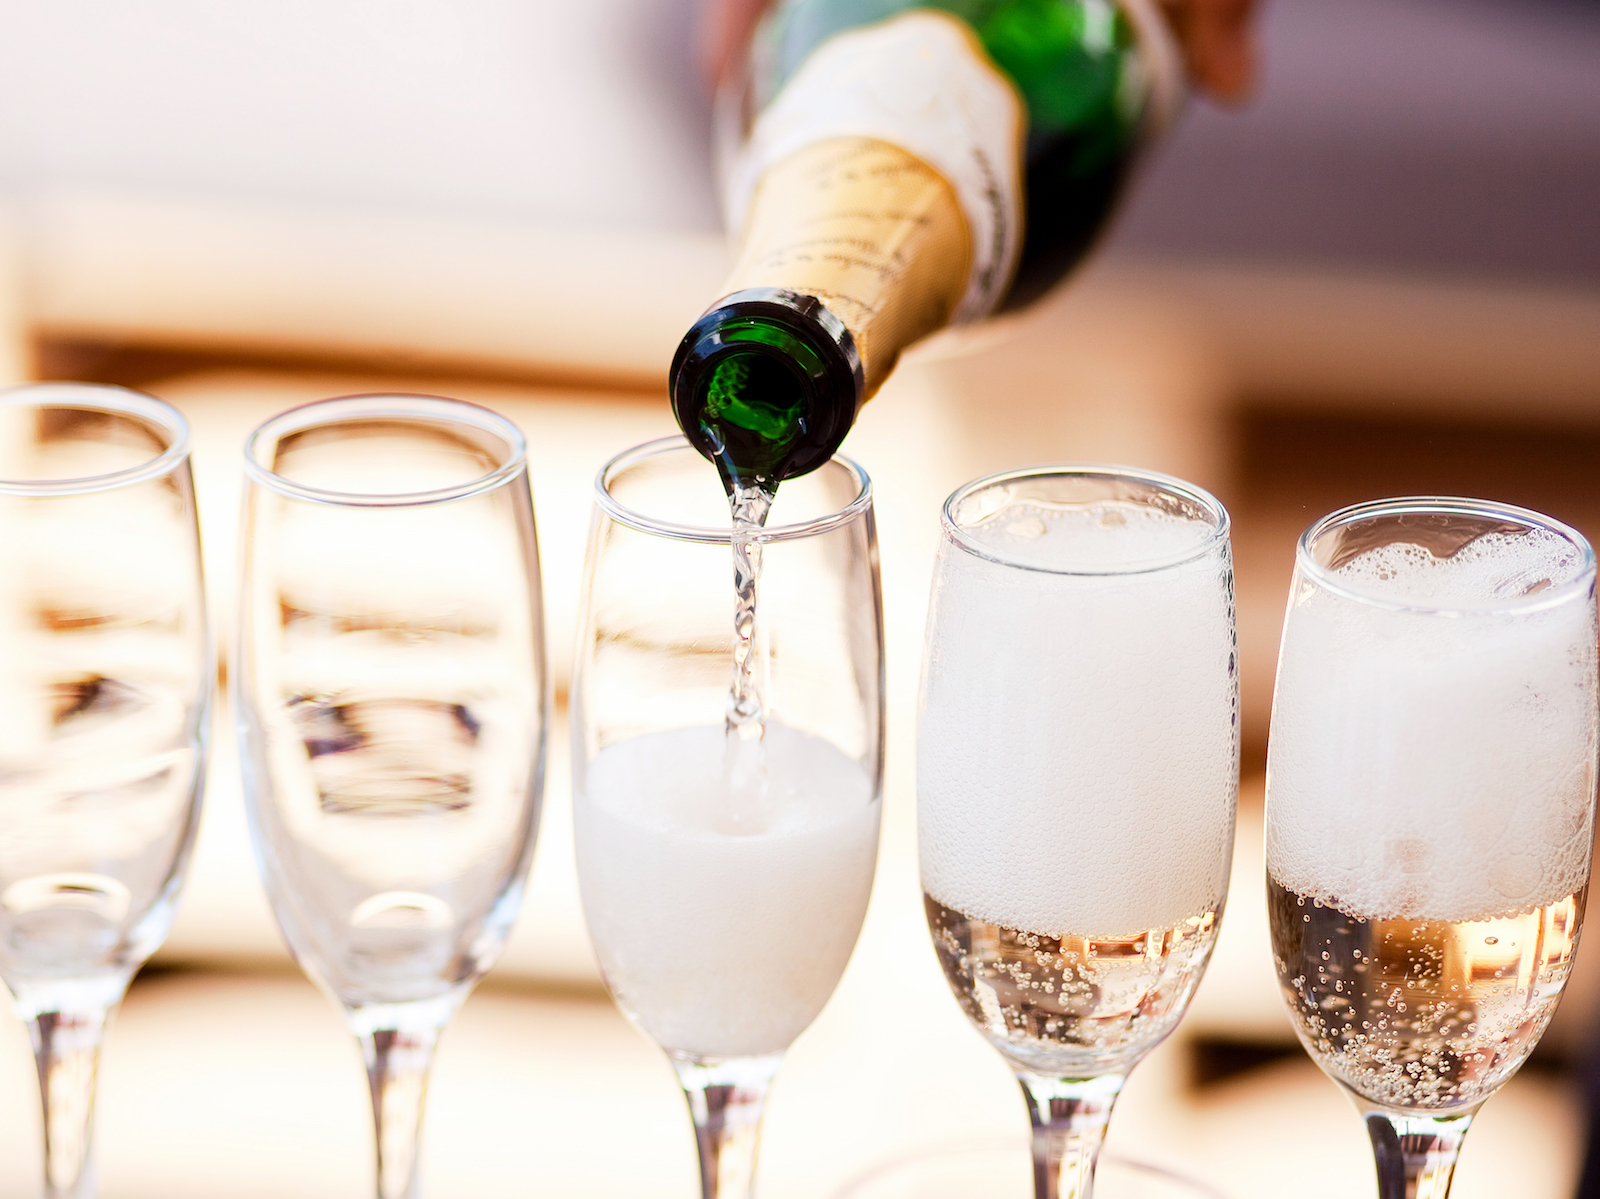 Does Prosecco Refer to the Region or Just the Grape?